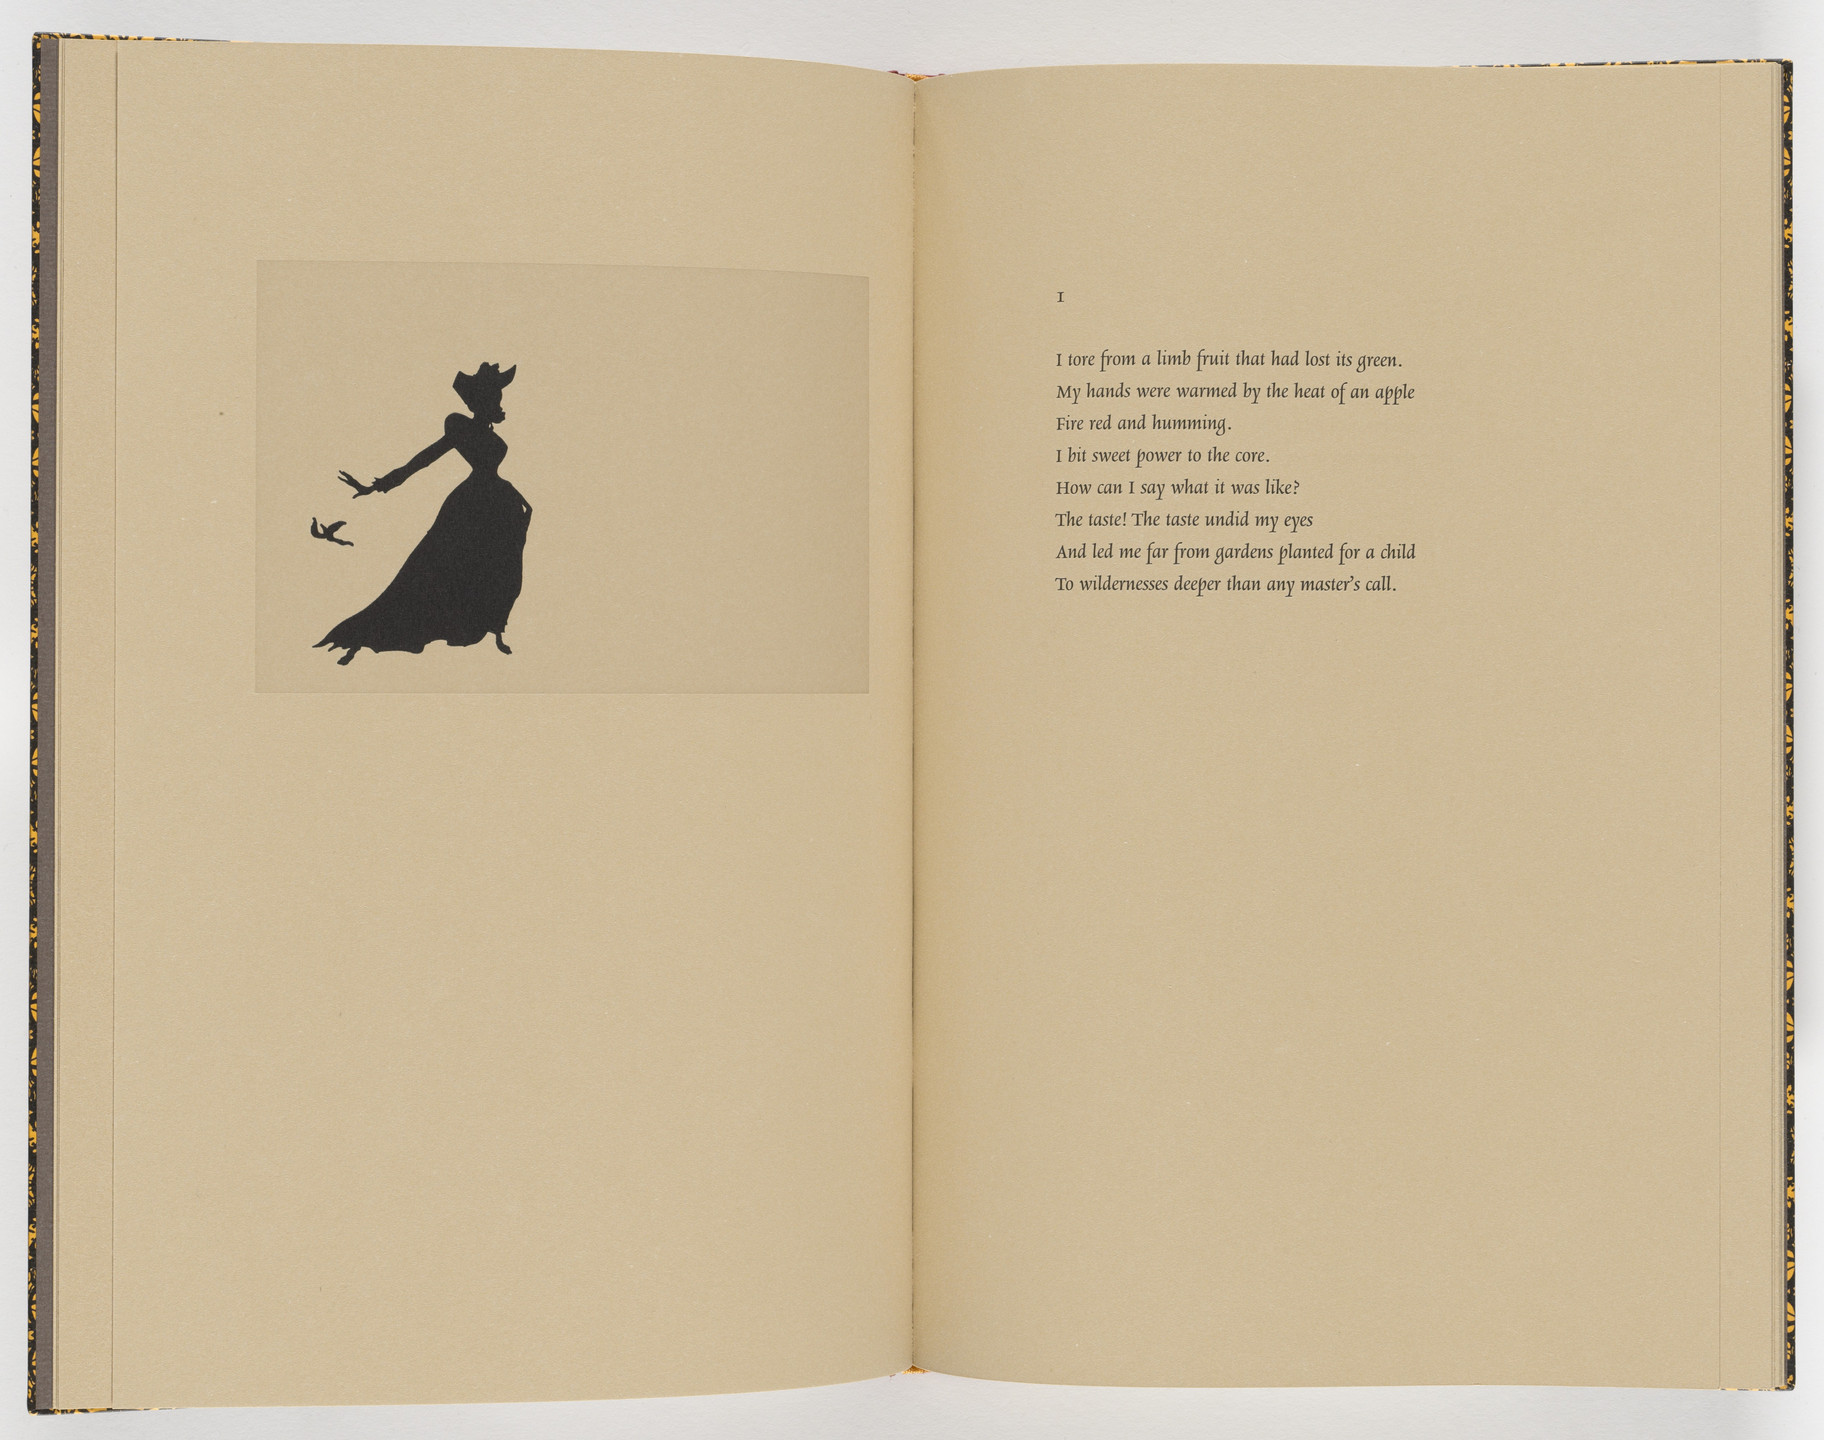 Kara Walker. Plate (page 8) from Five Poems. 2002